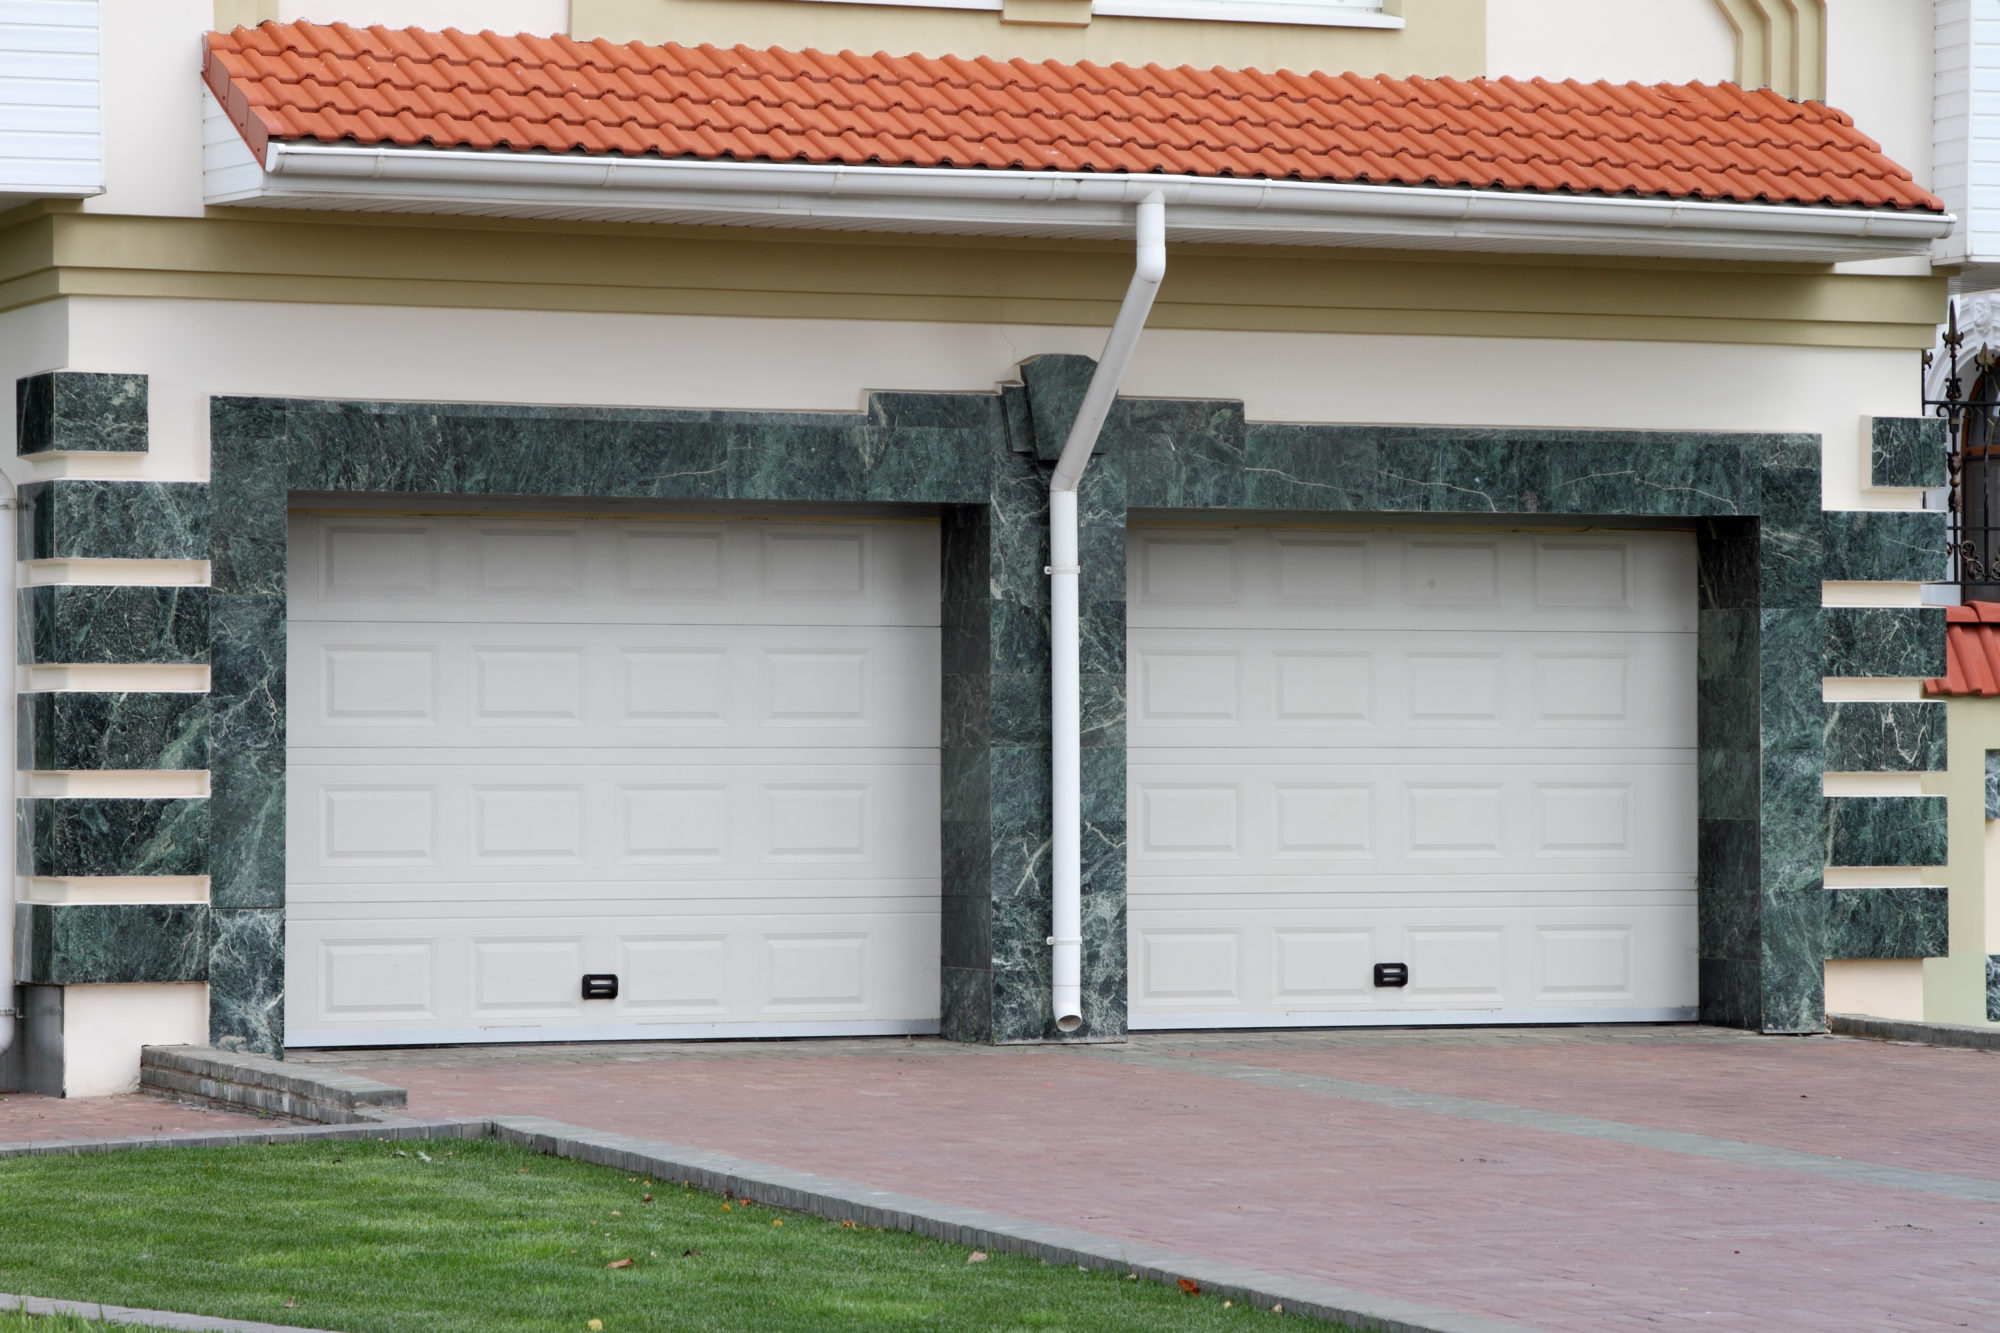 The Safety Importance of Hiring an Established Garage Door Company